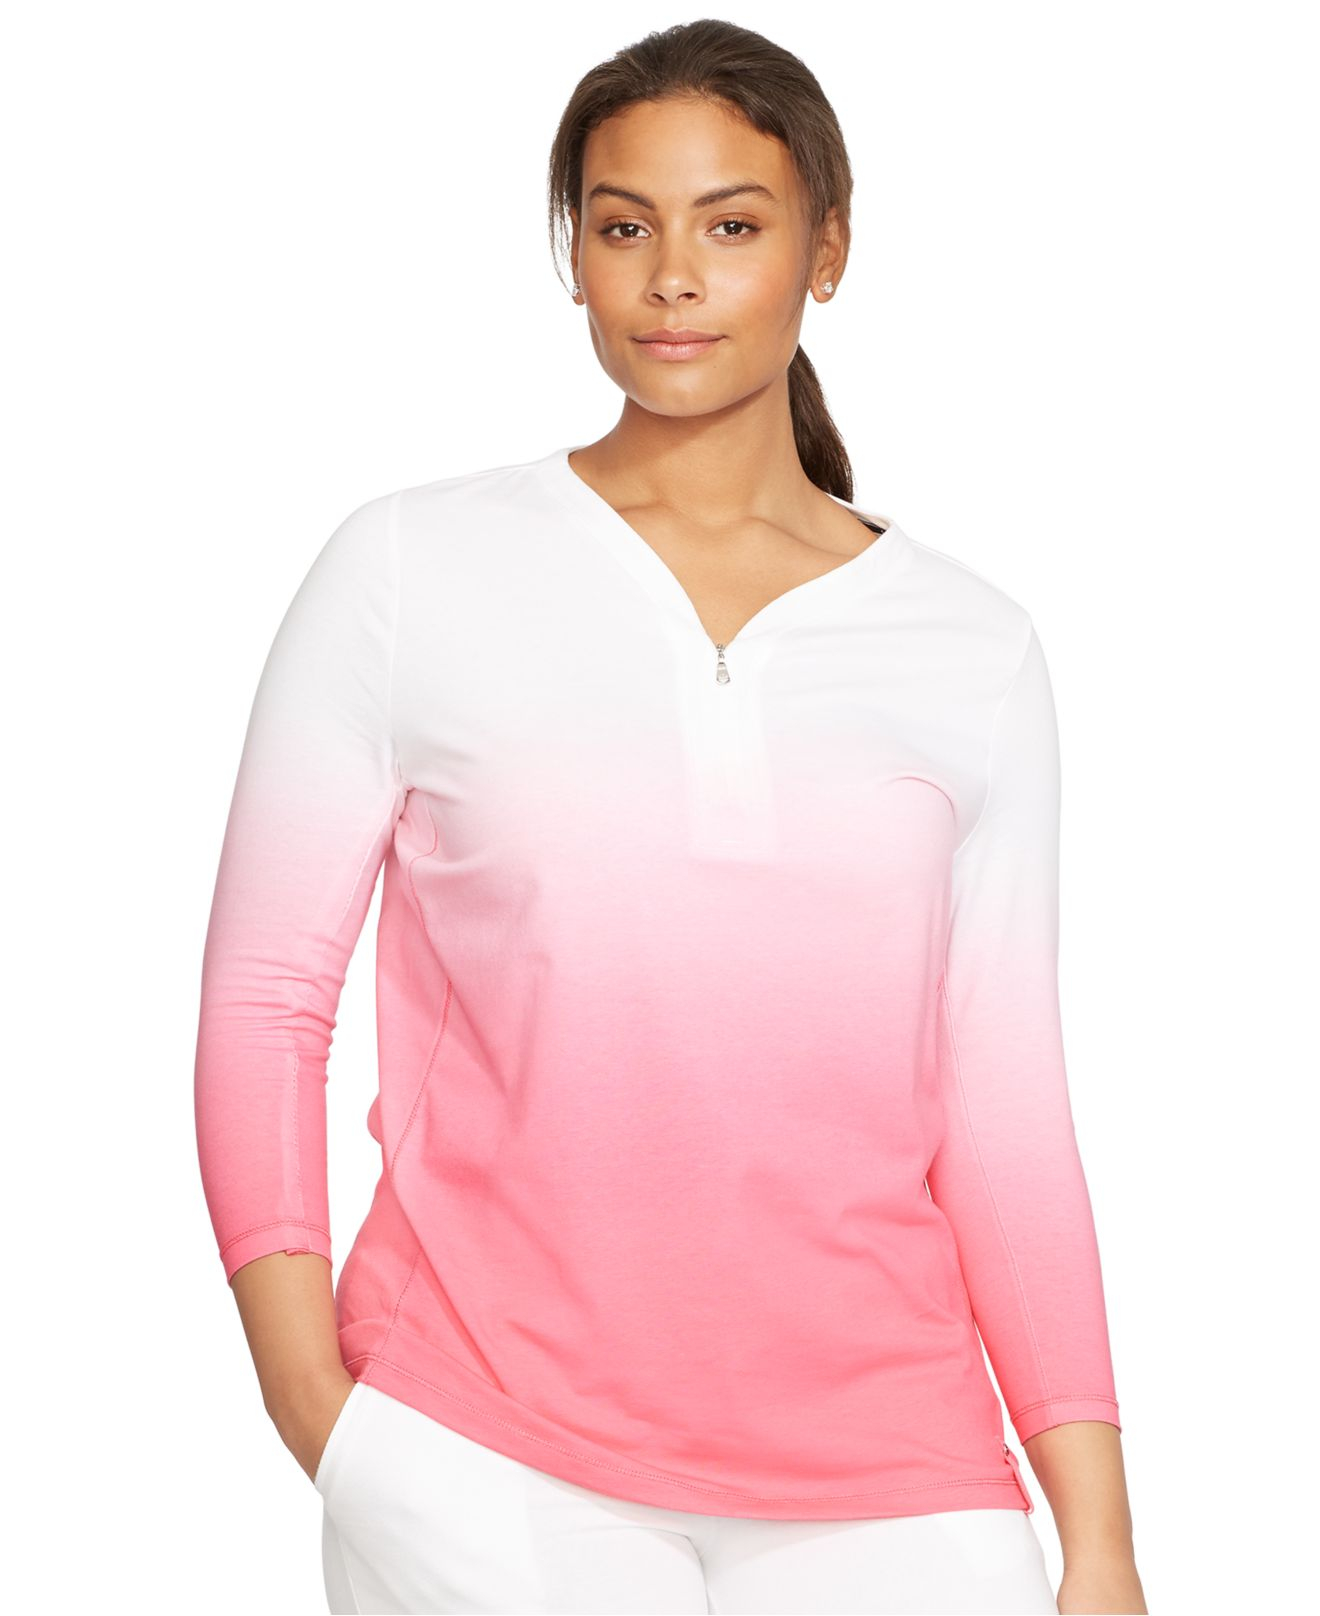 Lauren by ralph lauren Plus Size Ombré Half-Zip Shirt in Pink | Lyst